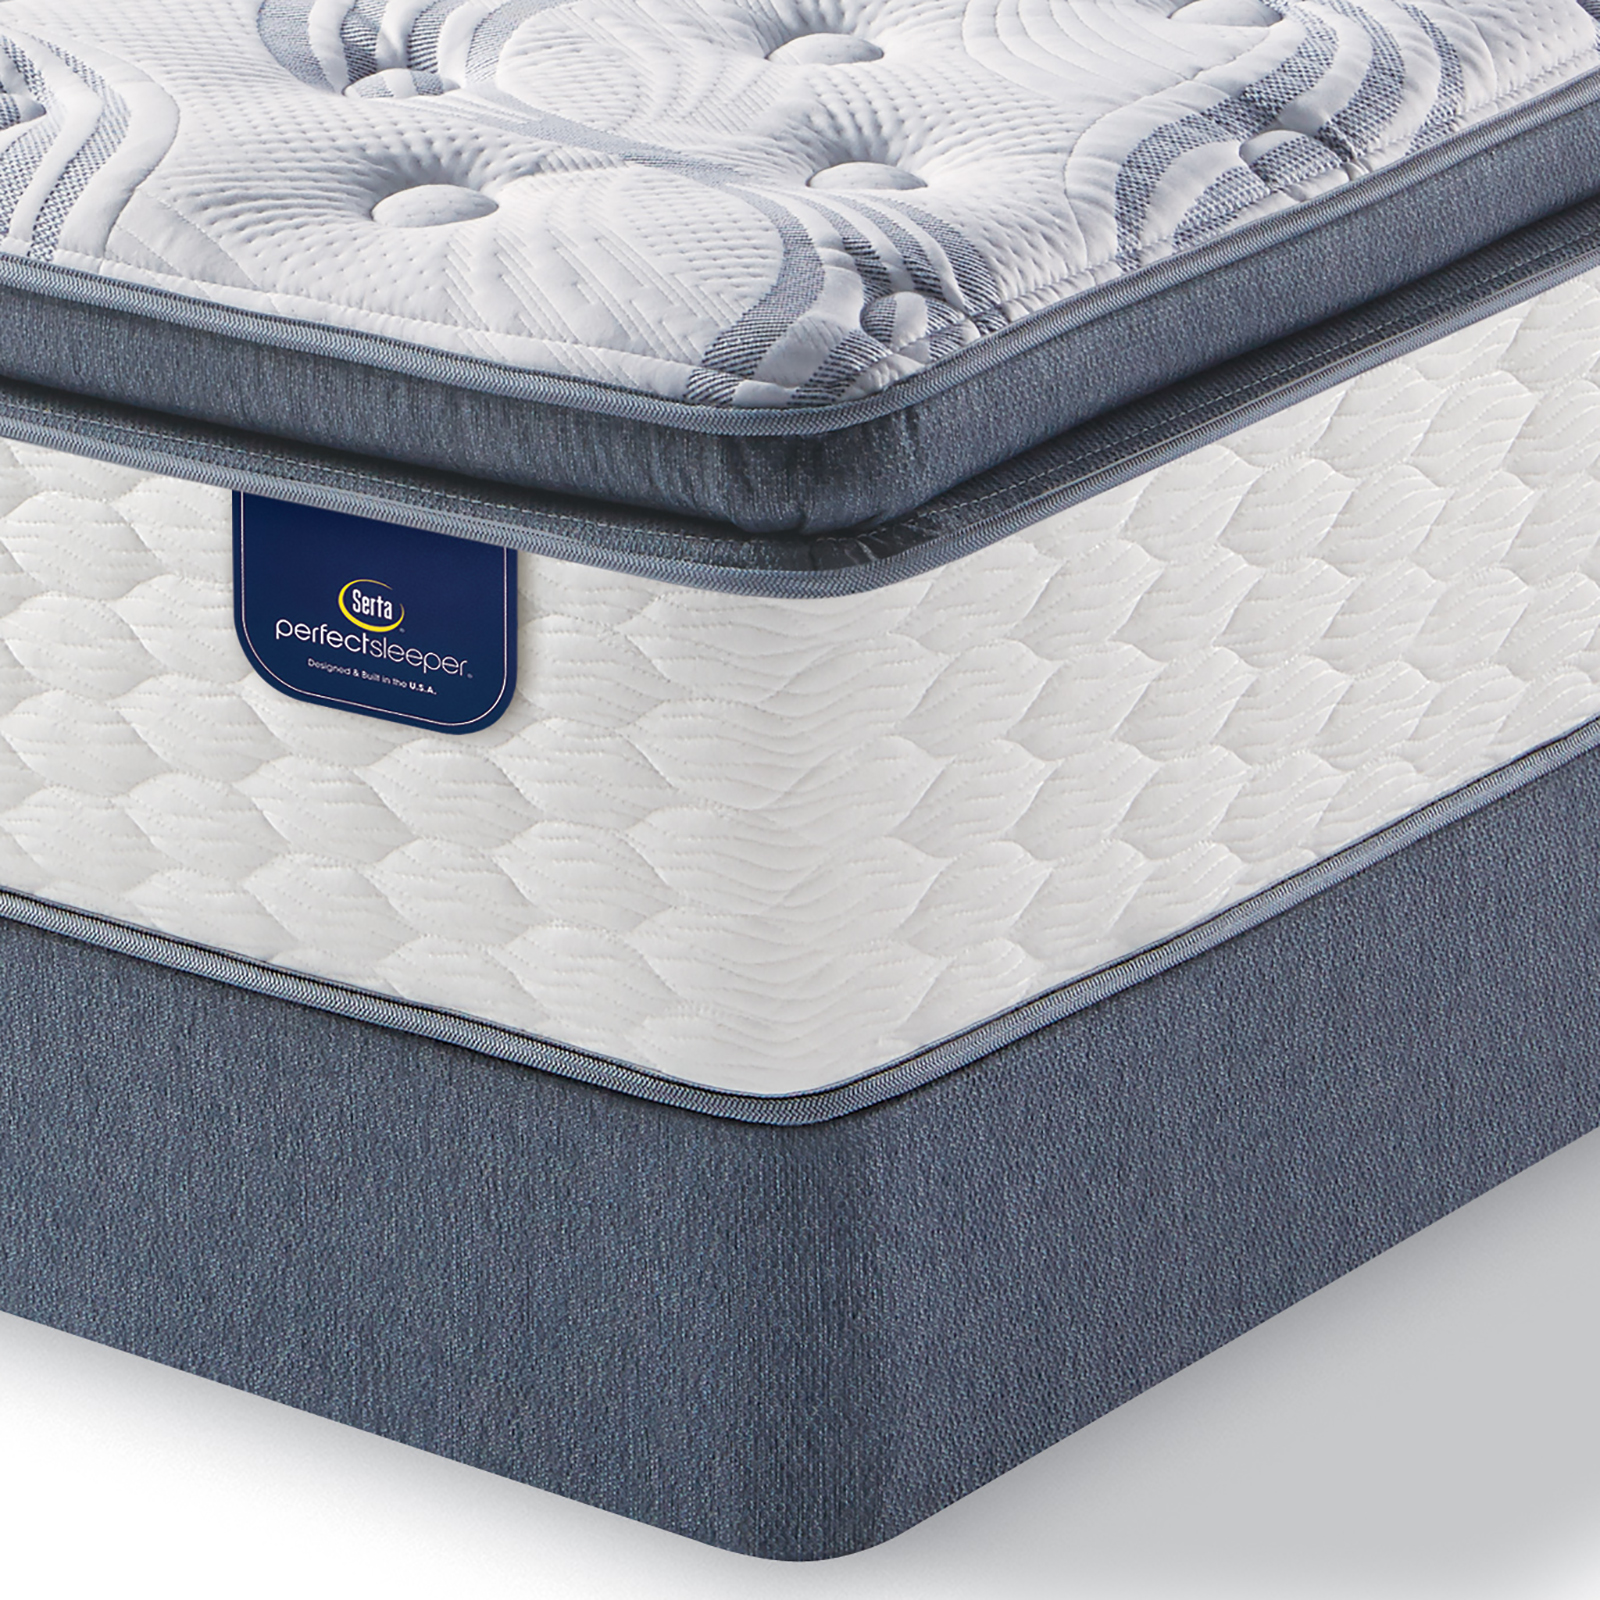 Serta Perfect Sleeper Teddington Firm